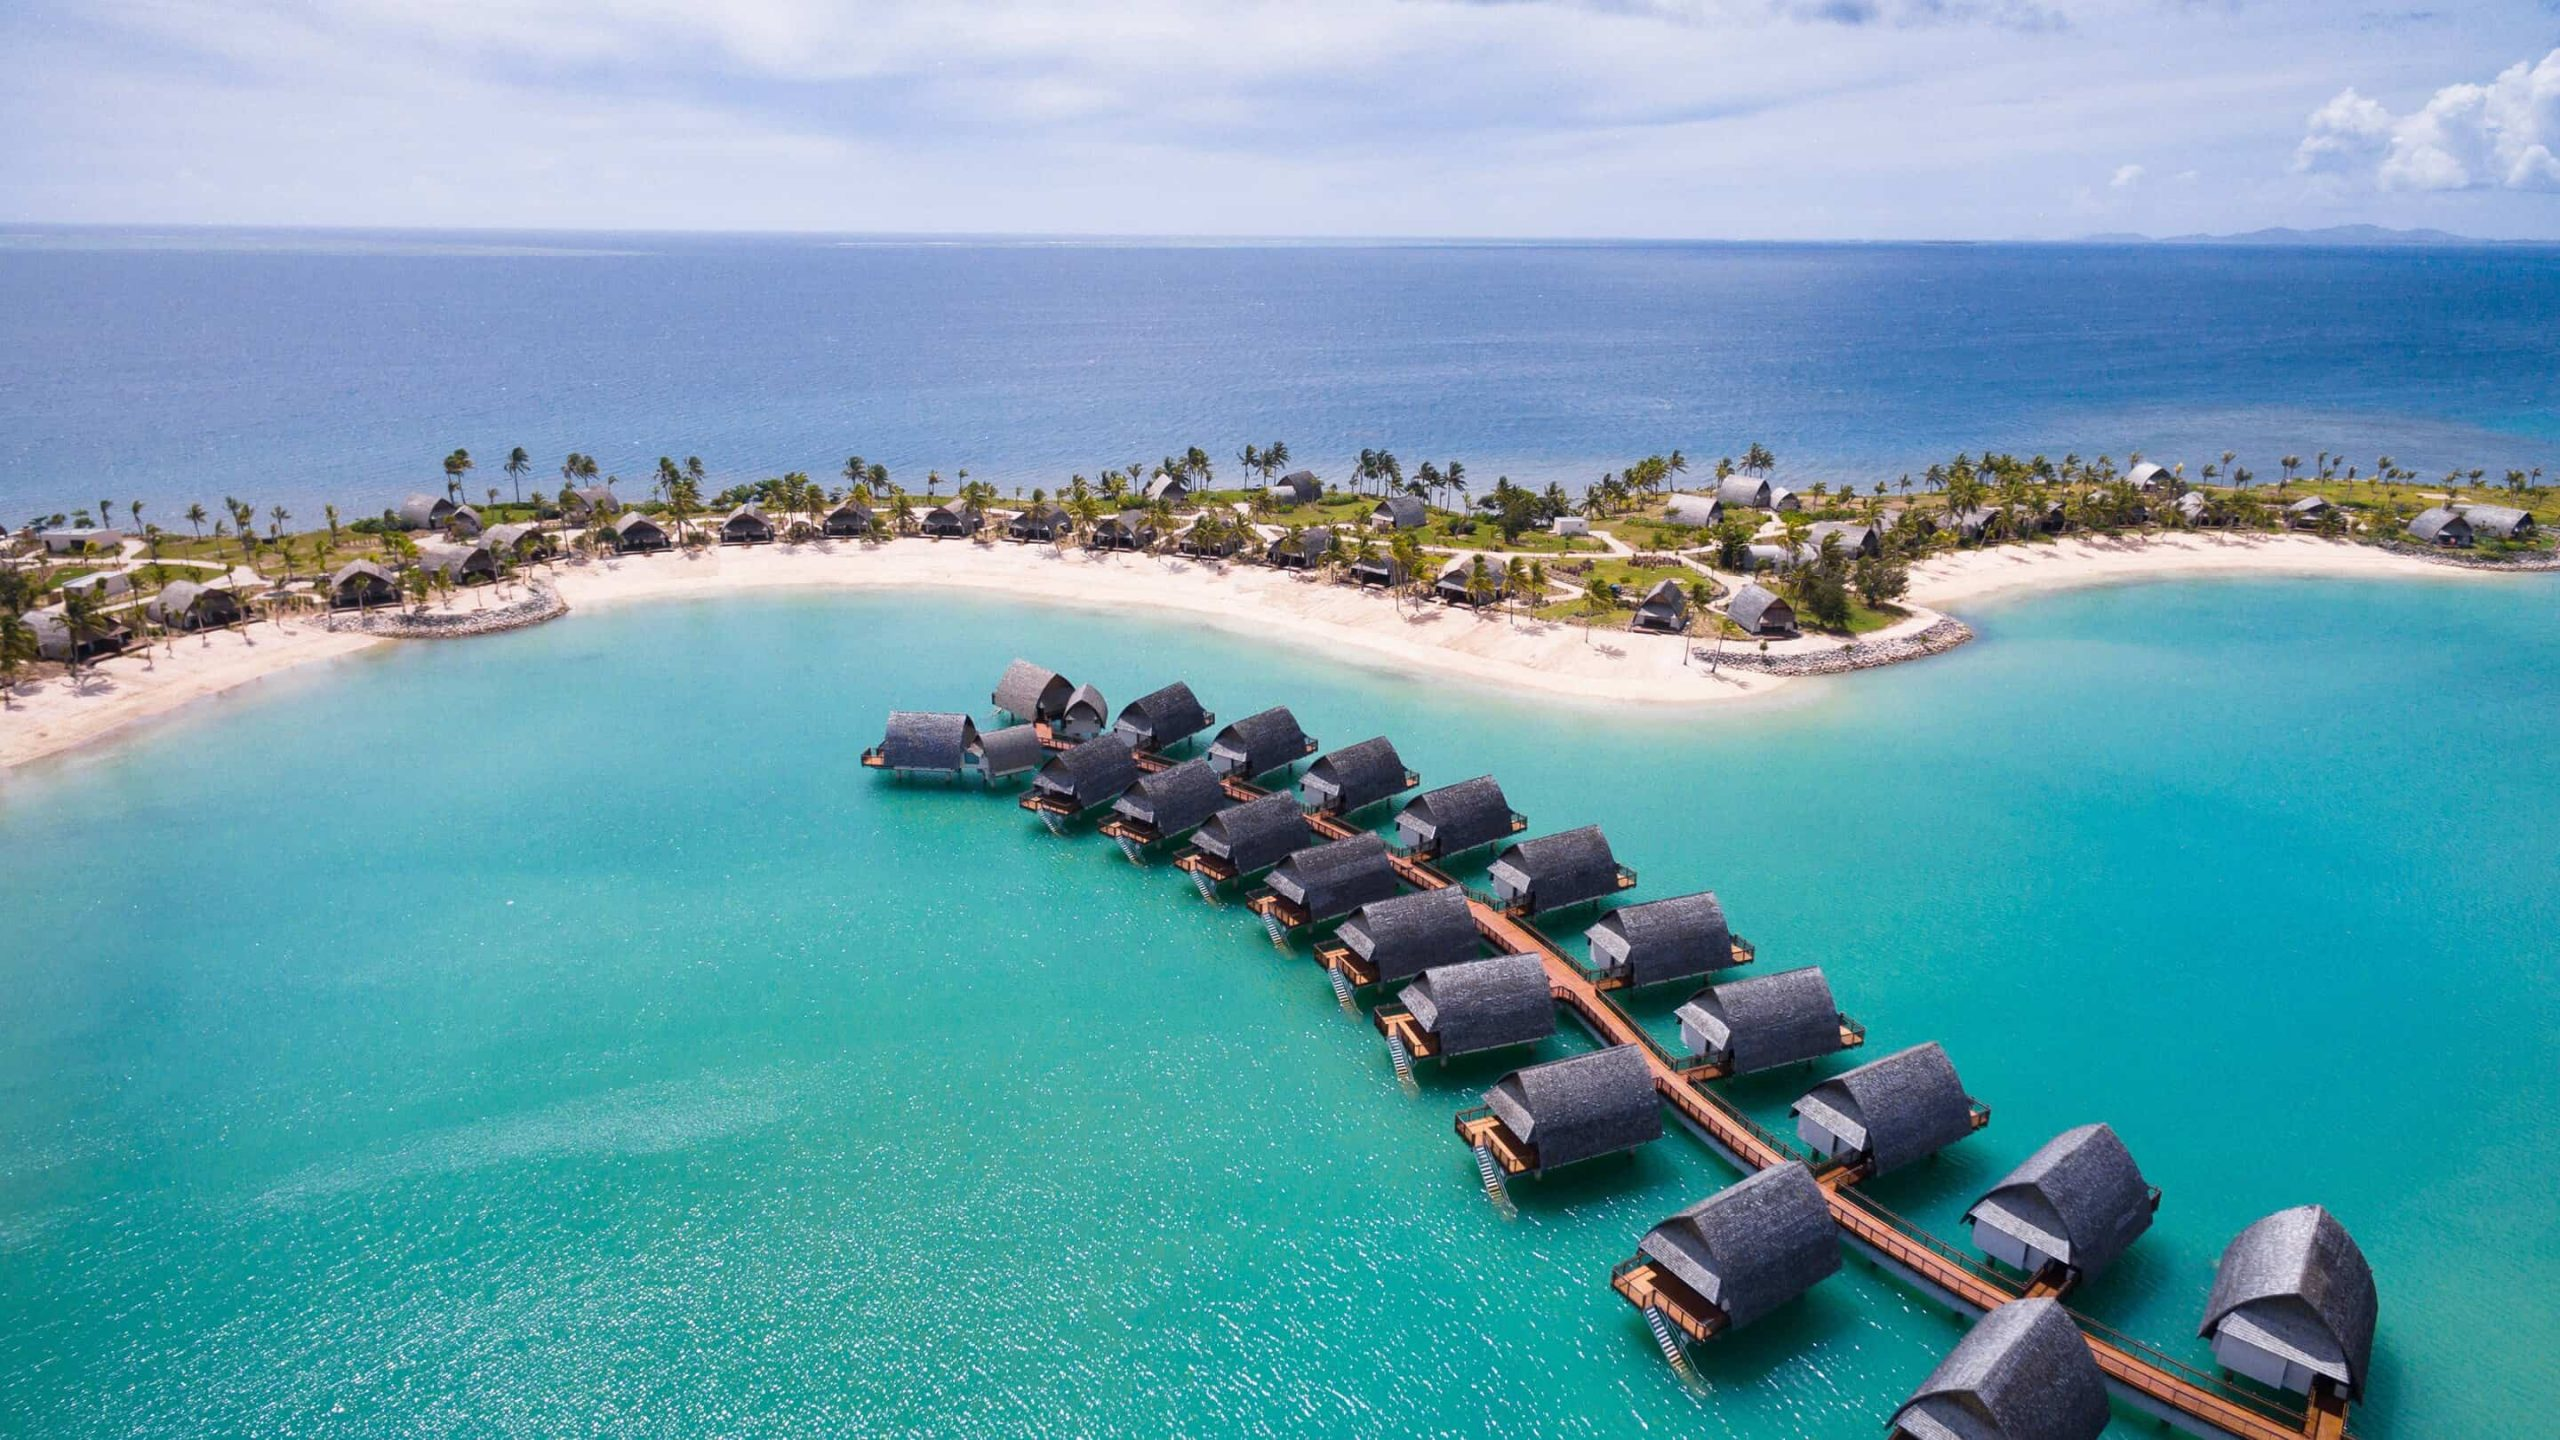 My Free Night In An Overwater Bungalow In Fiji With A Marriott Certificate